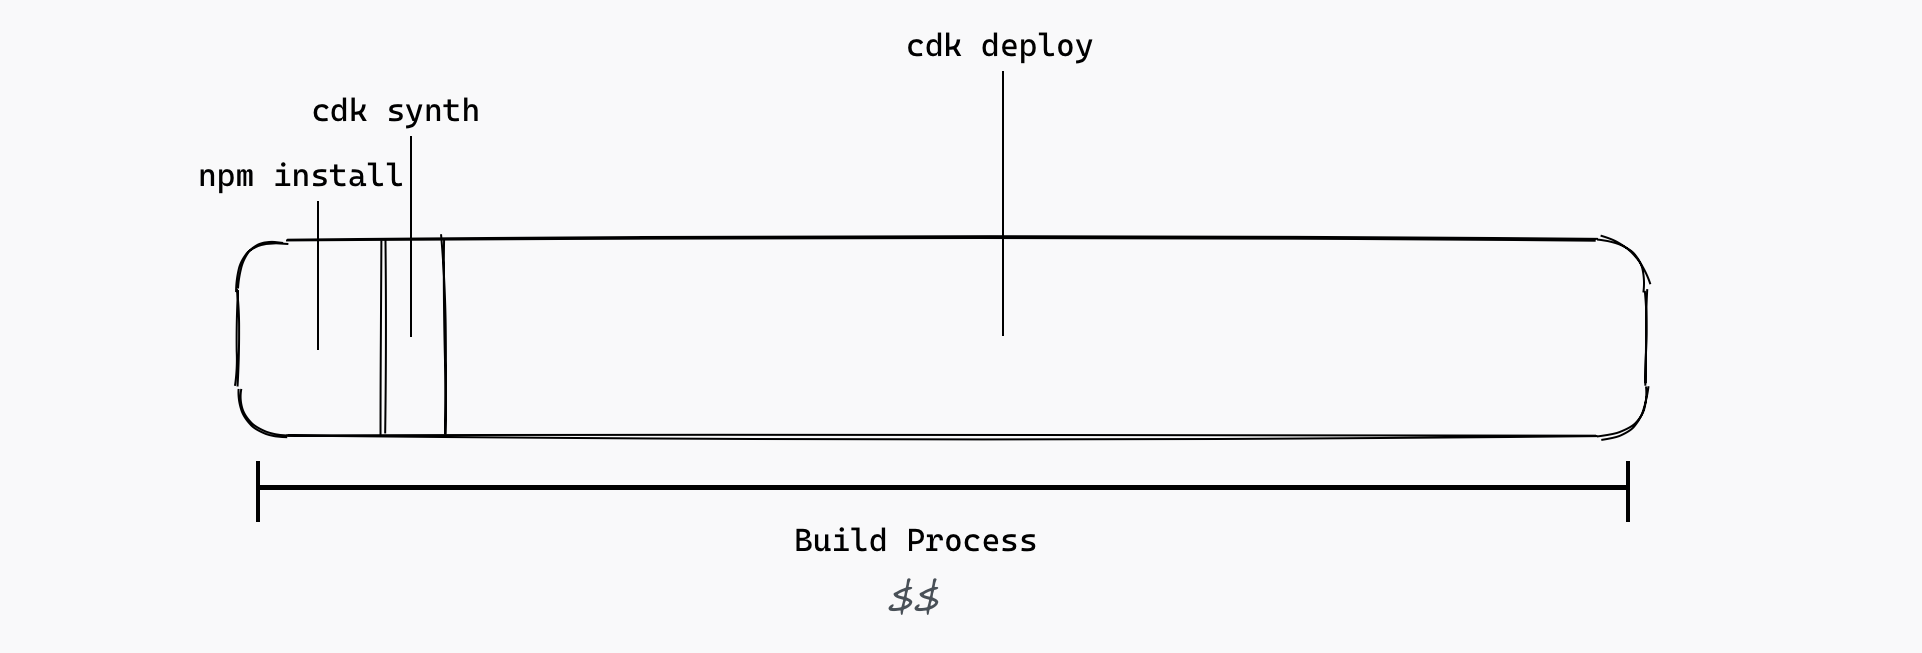 CDK deployment lifecycle